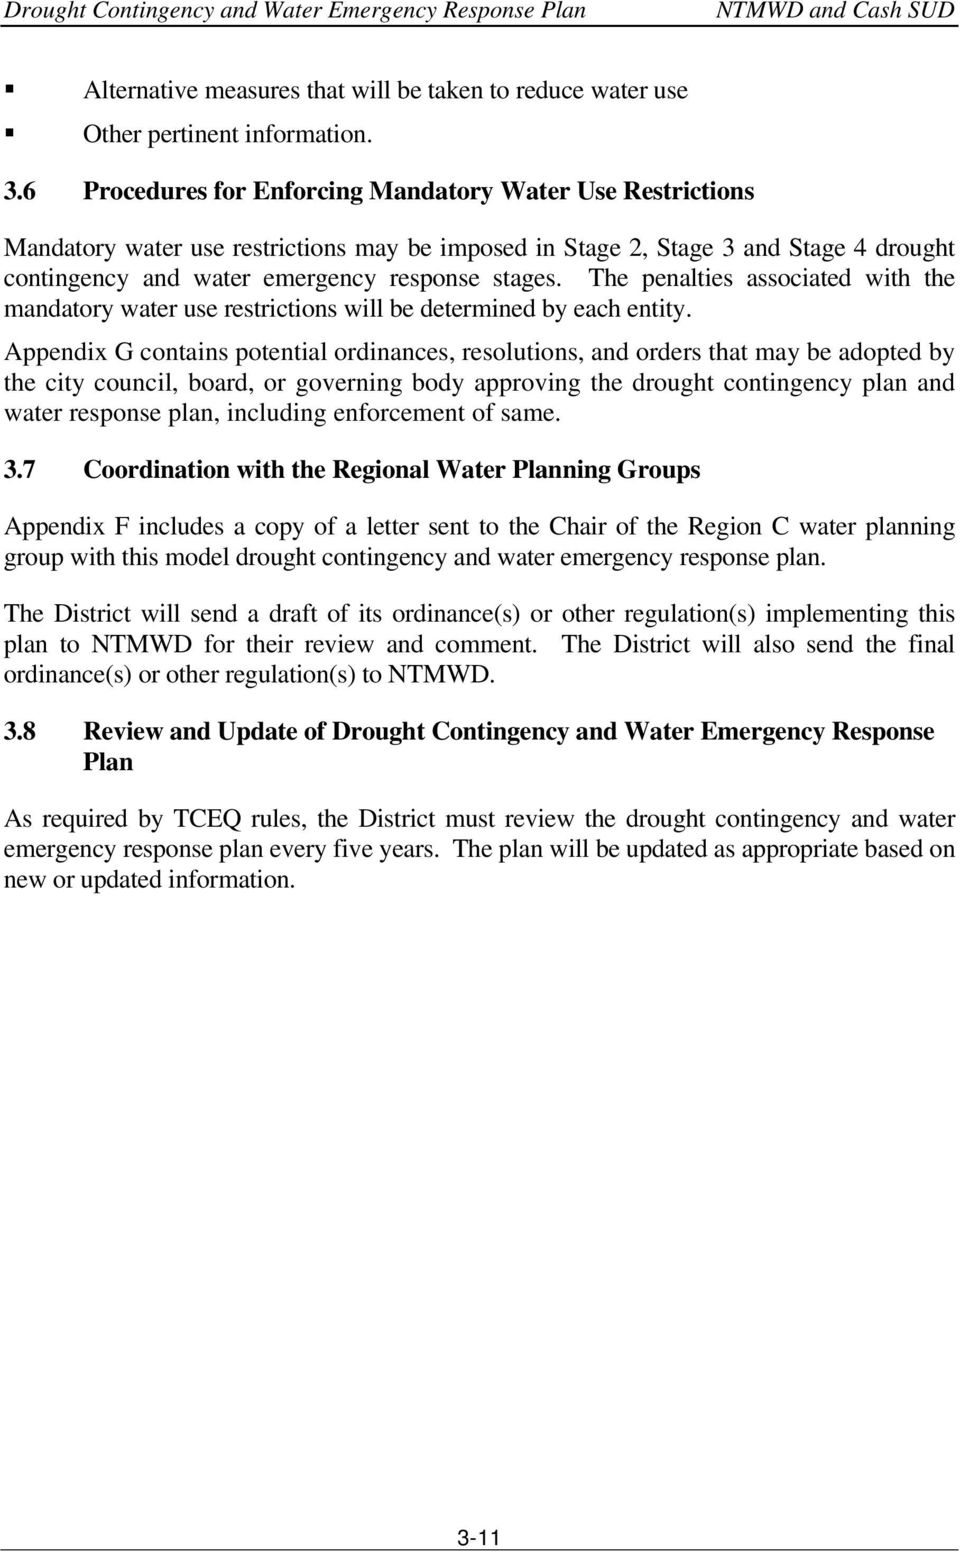 The penalties associated with the mandatory water use restrictions will be determined by each entity.